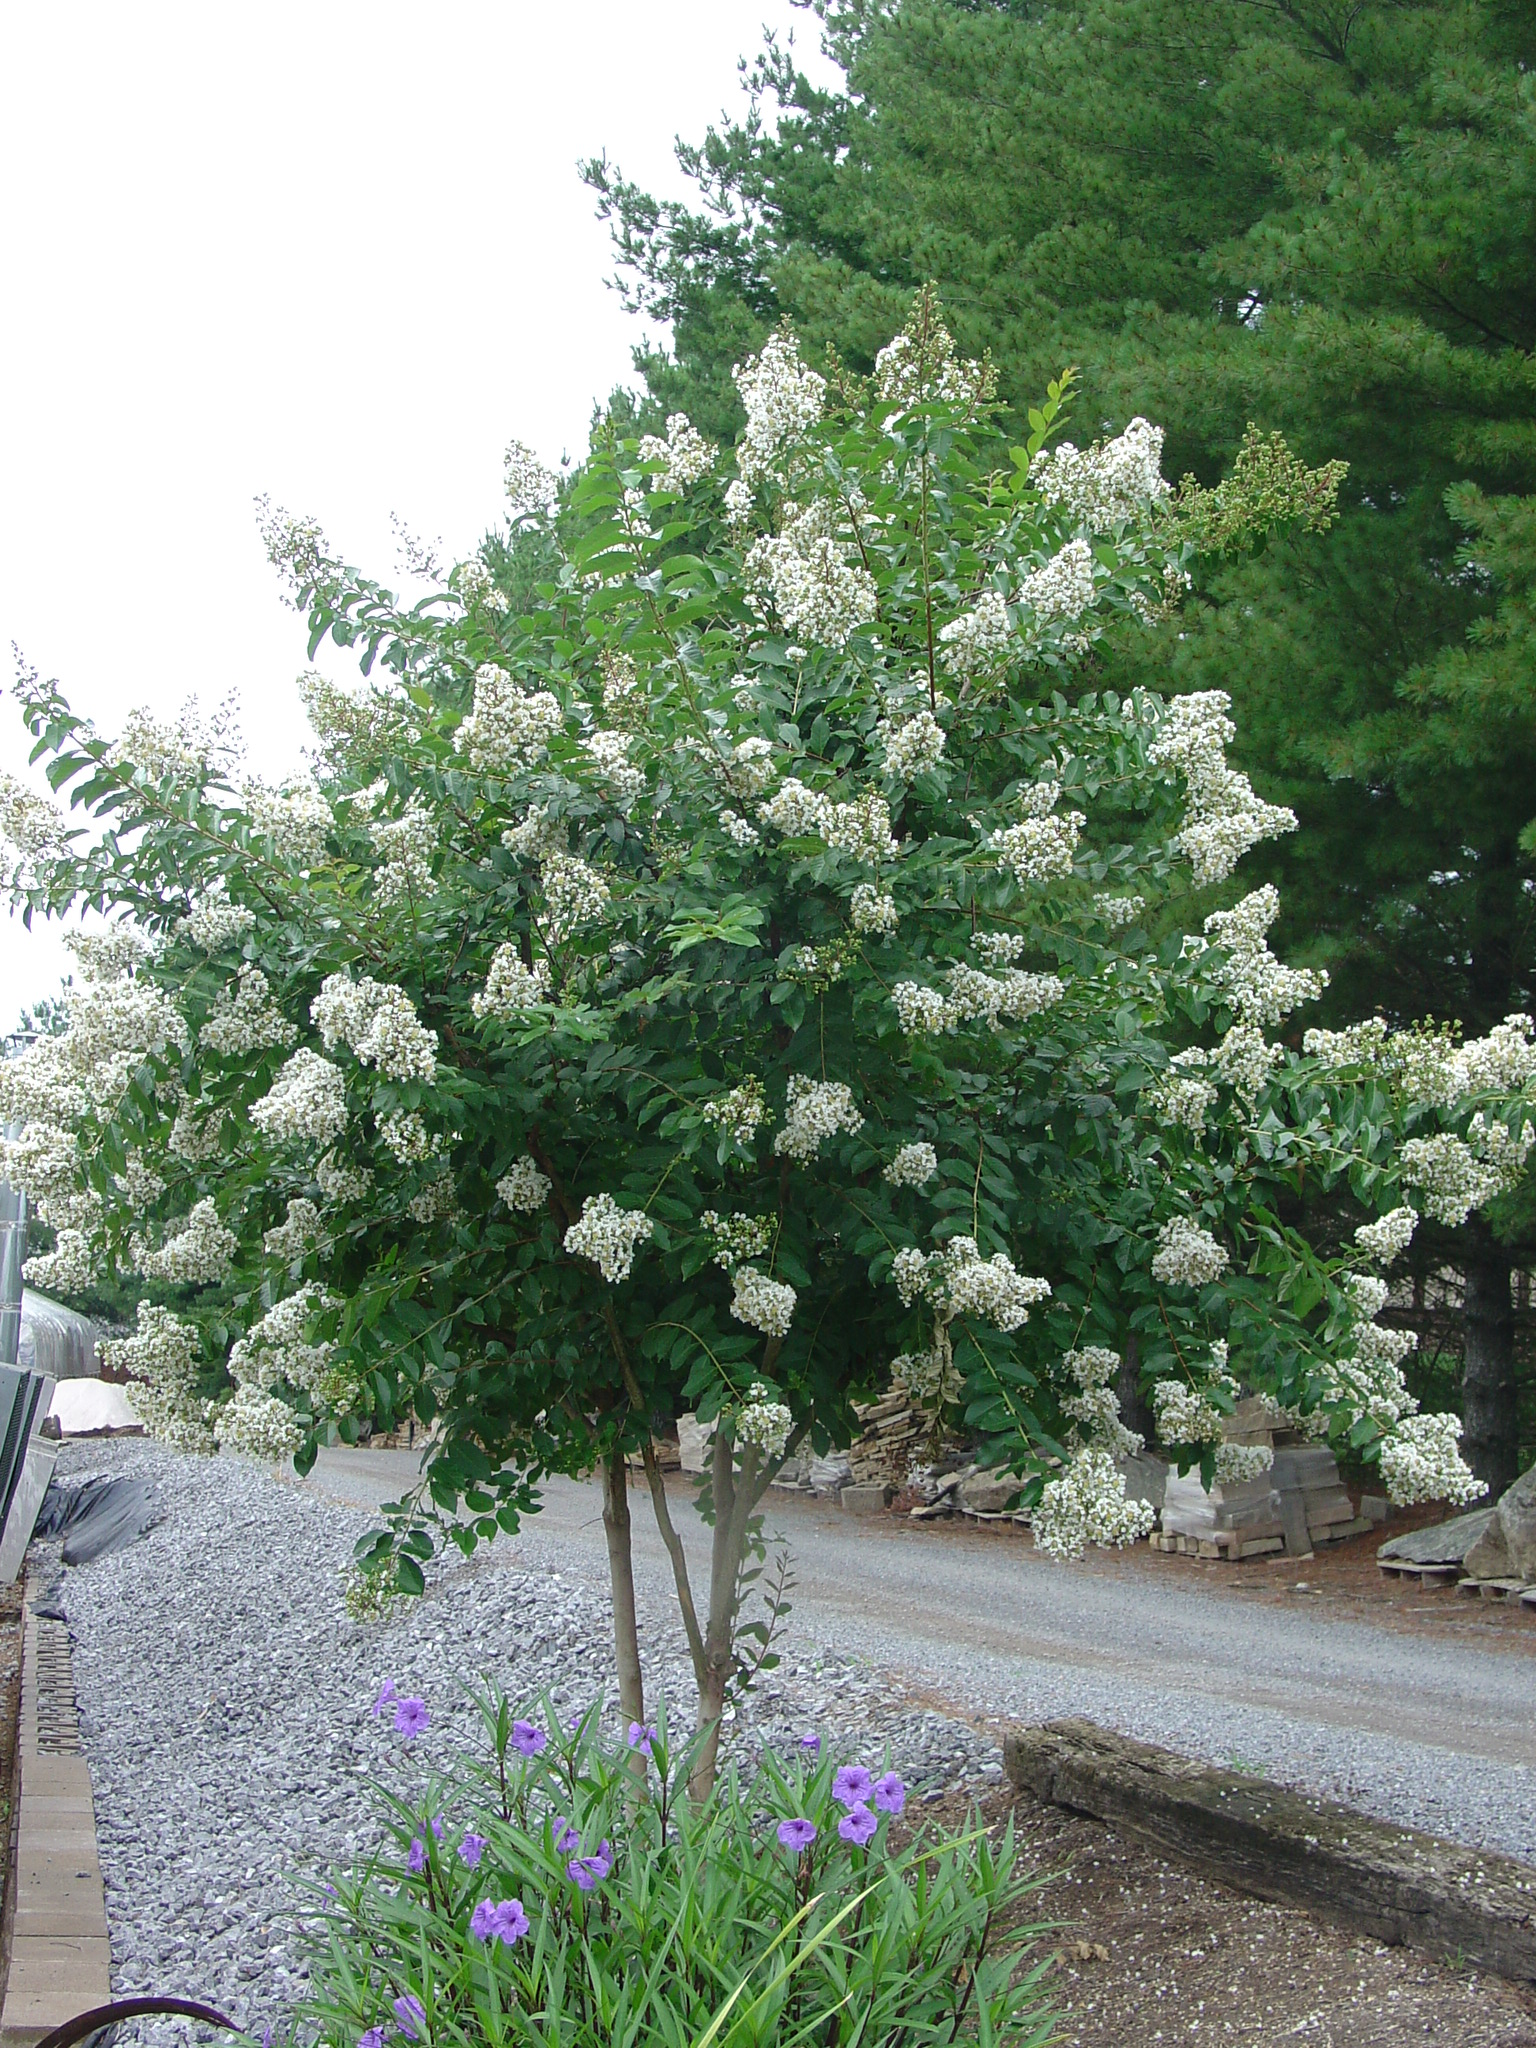 Charm Crape Recommendations On Hardy Crape Myrtles What Grows Re Hugh Tonto Crape Myrtle Tonto Crape Myrtle Tree houzz 01 Acoma Crape Myrtle